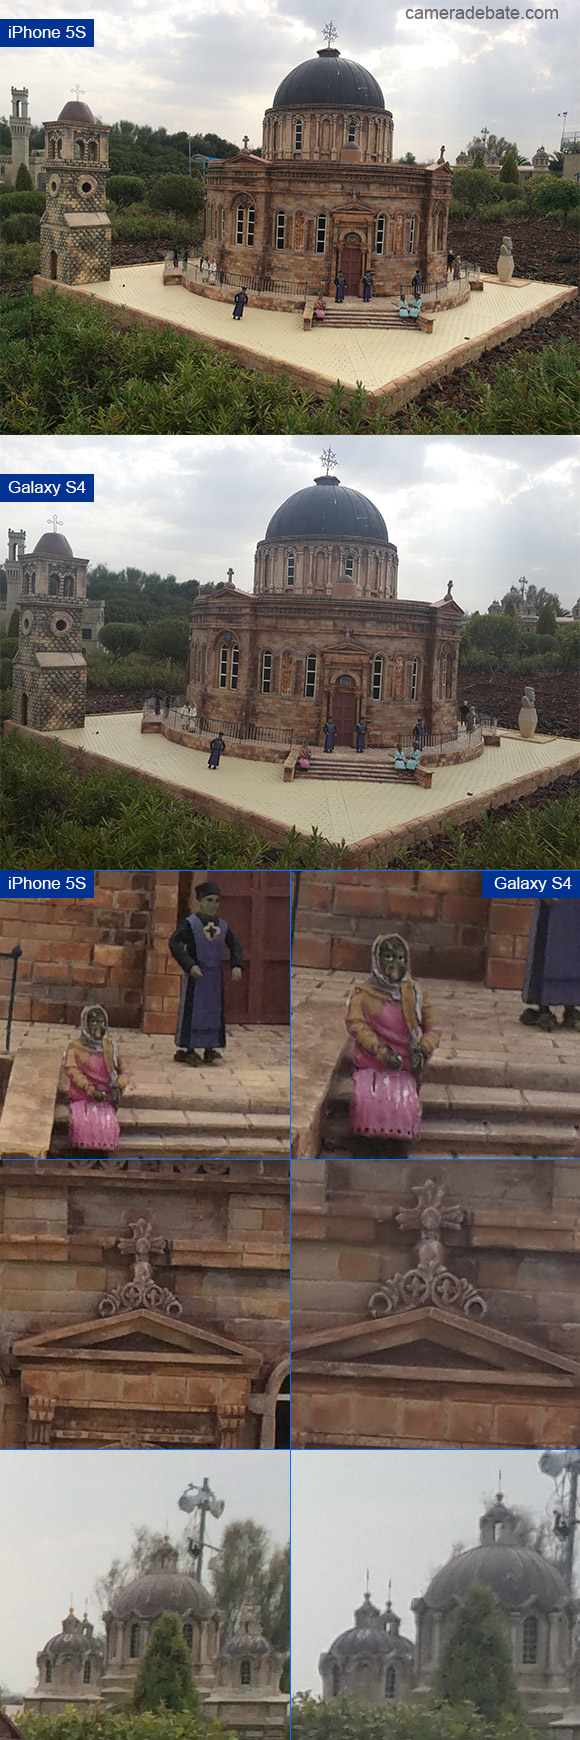 Picture of a miniature church, comparing iPhone 5S and Galaxy S4 image quality